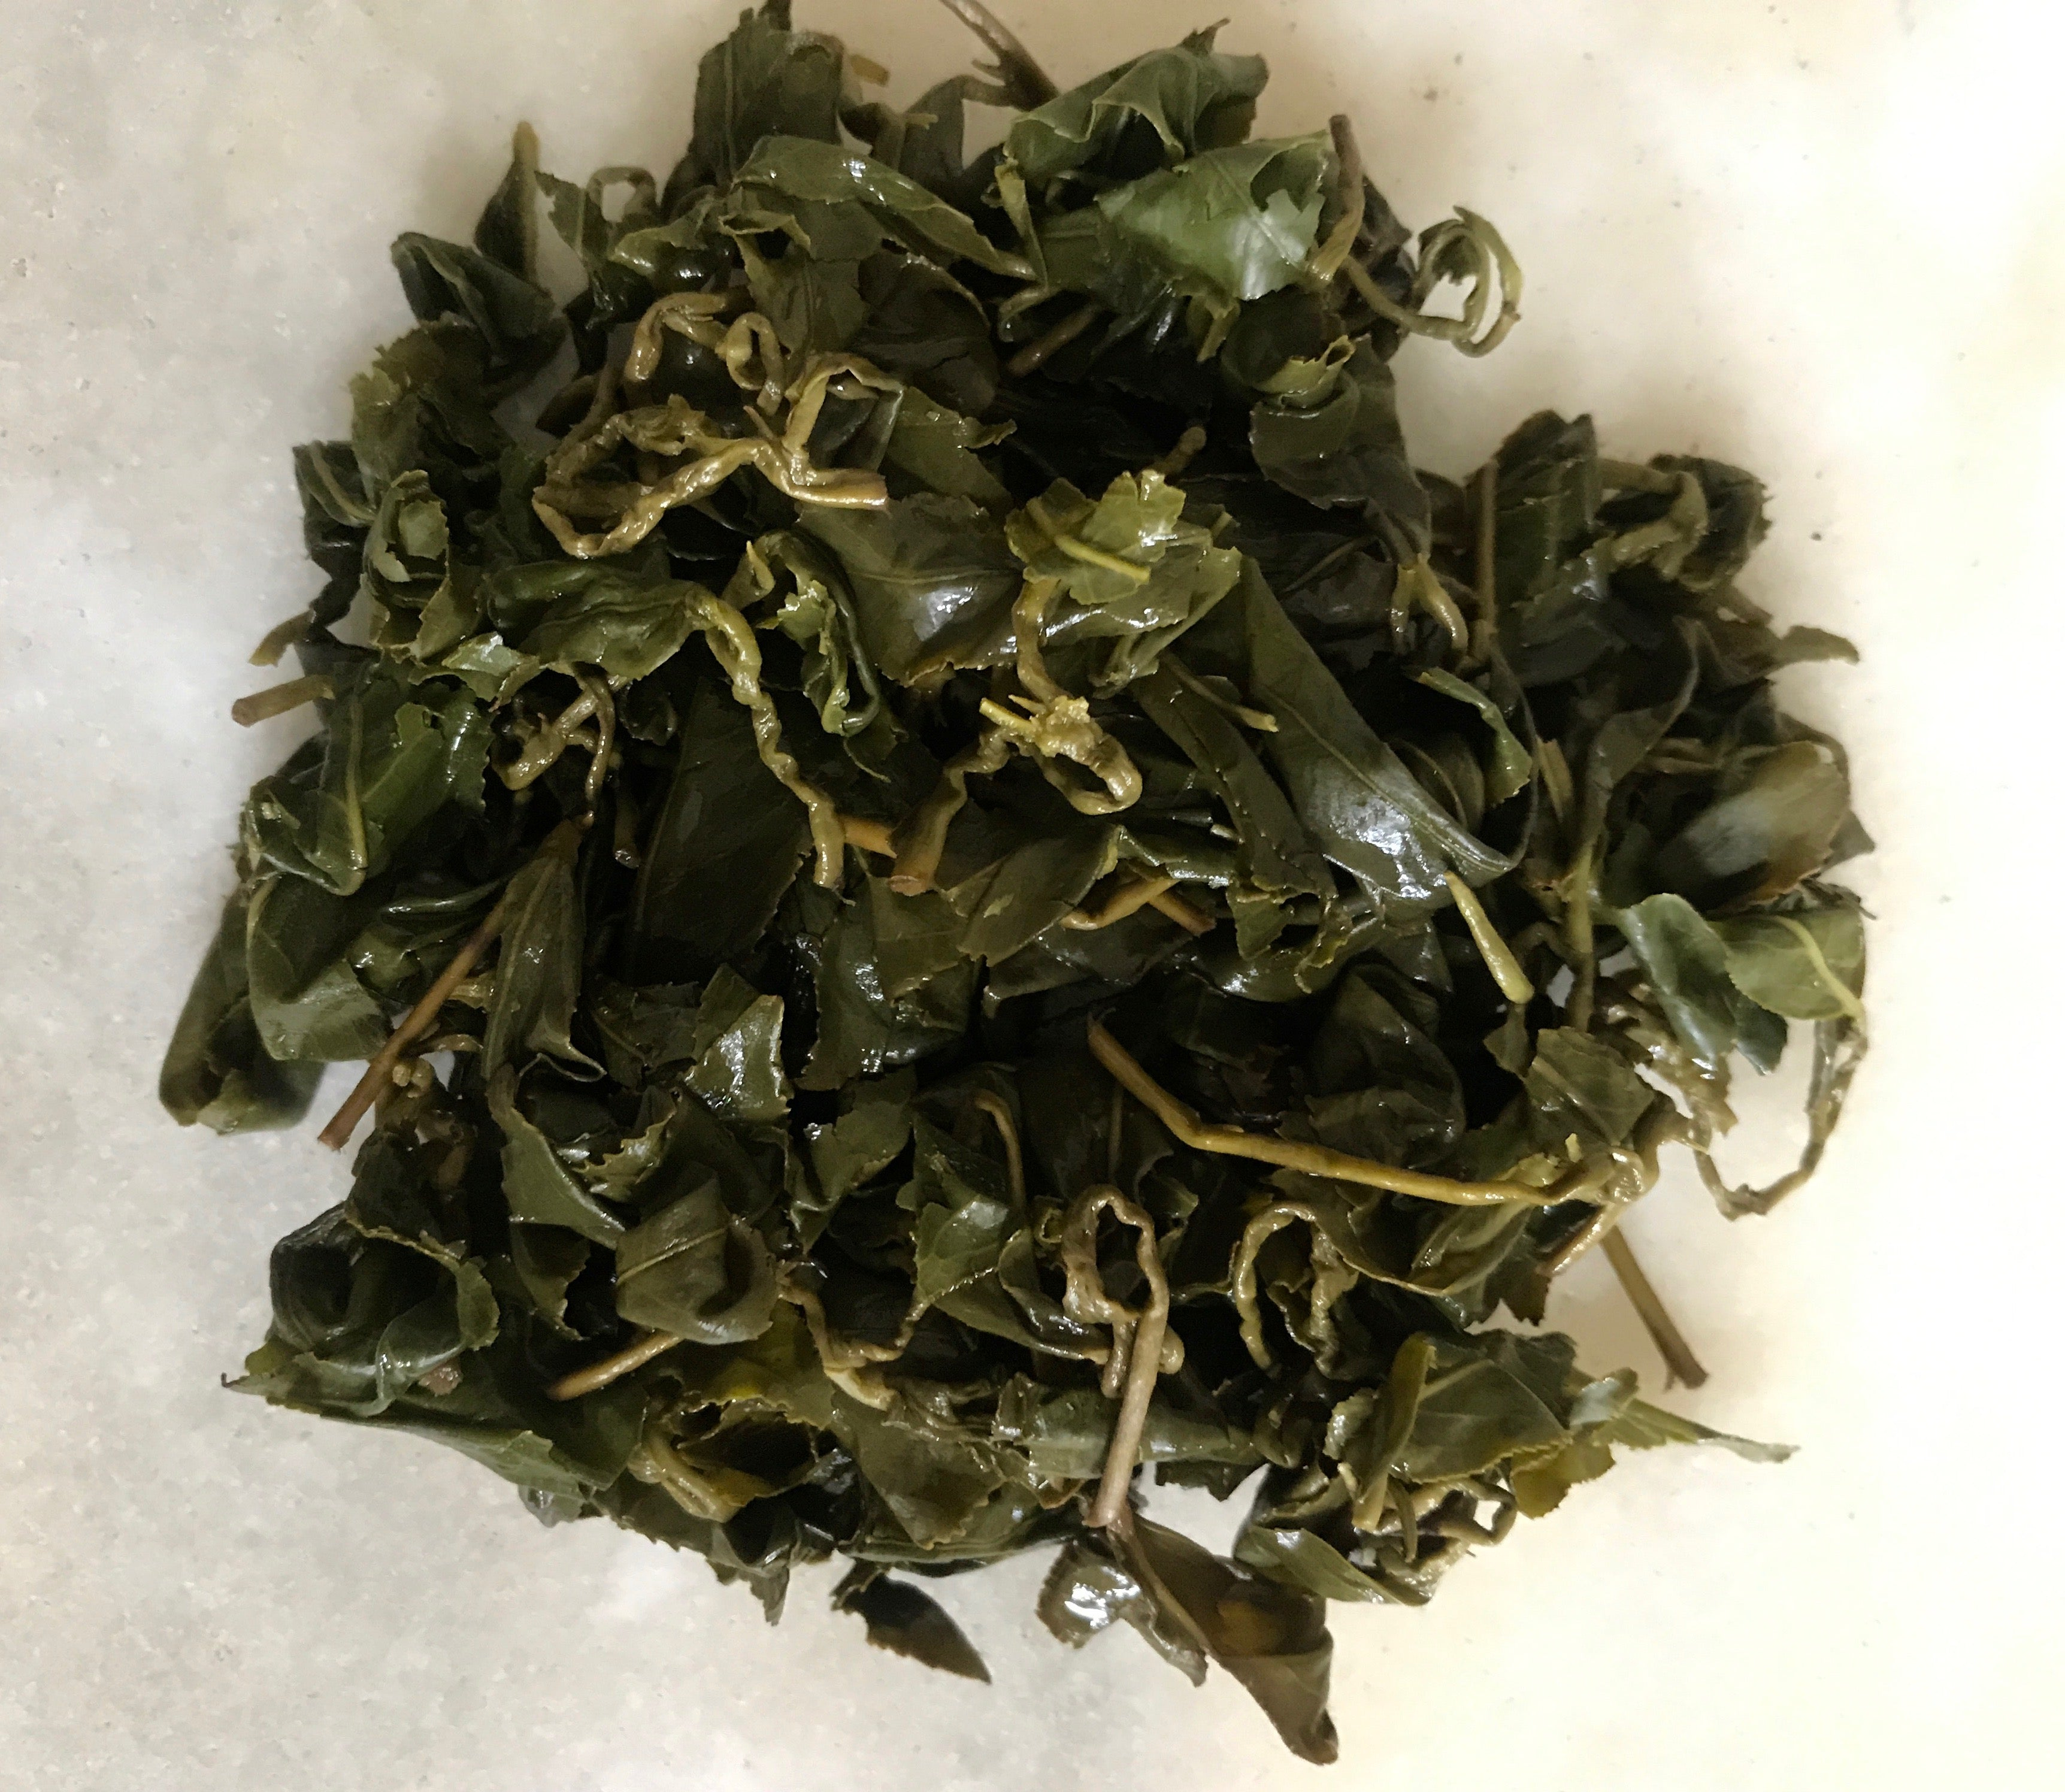 Loose leaf oolong tea leaves after a round of Gong Fu brewing